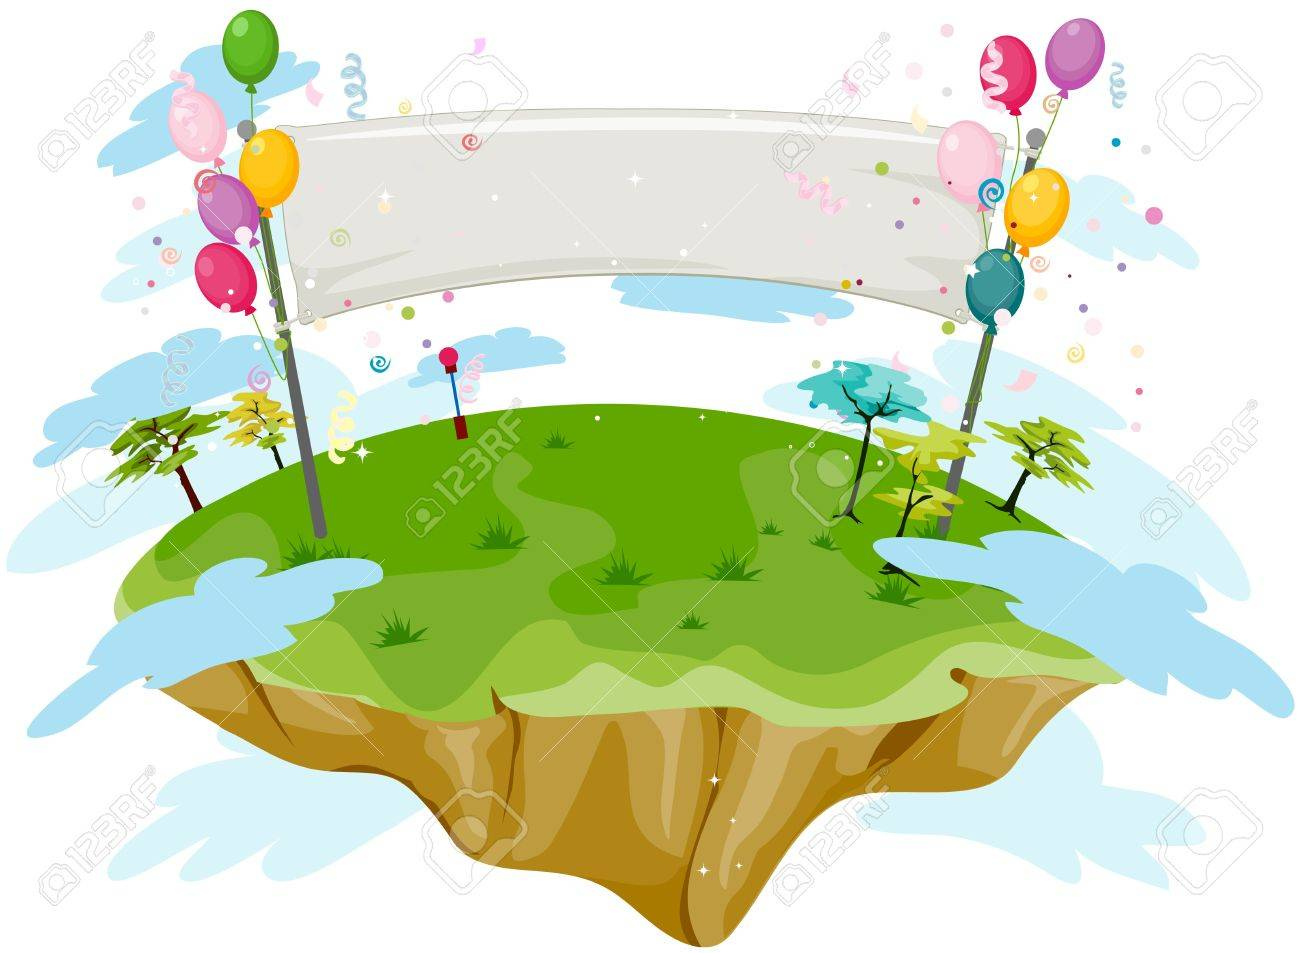 blank birthday banner on a floating island stock photo picture and